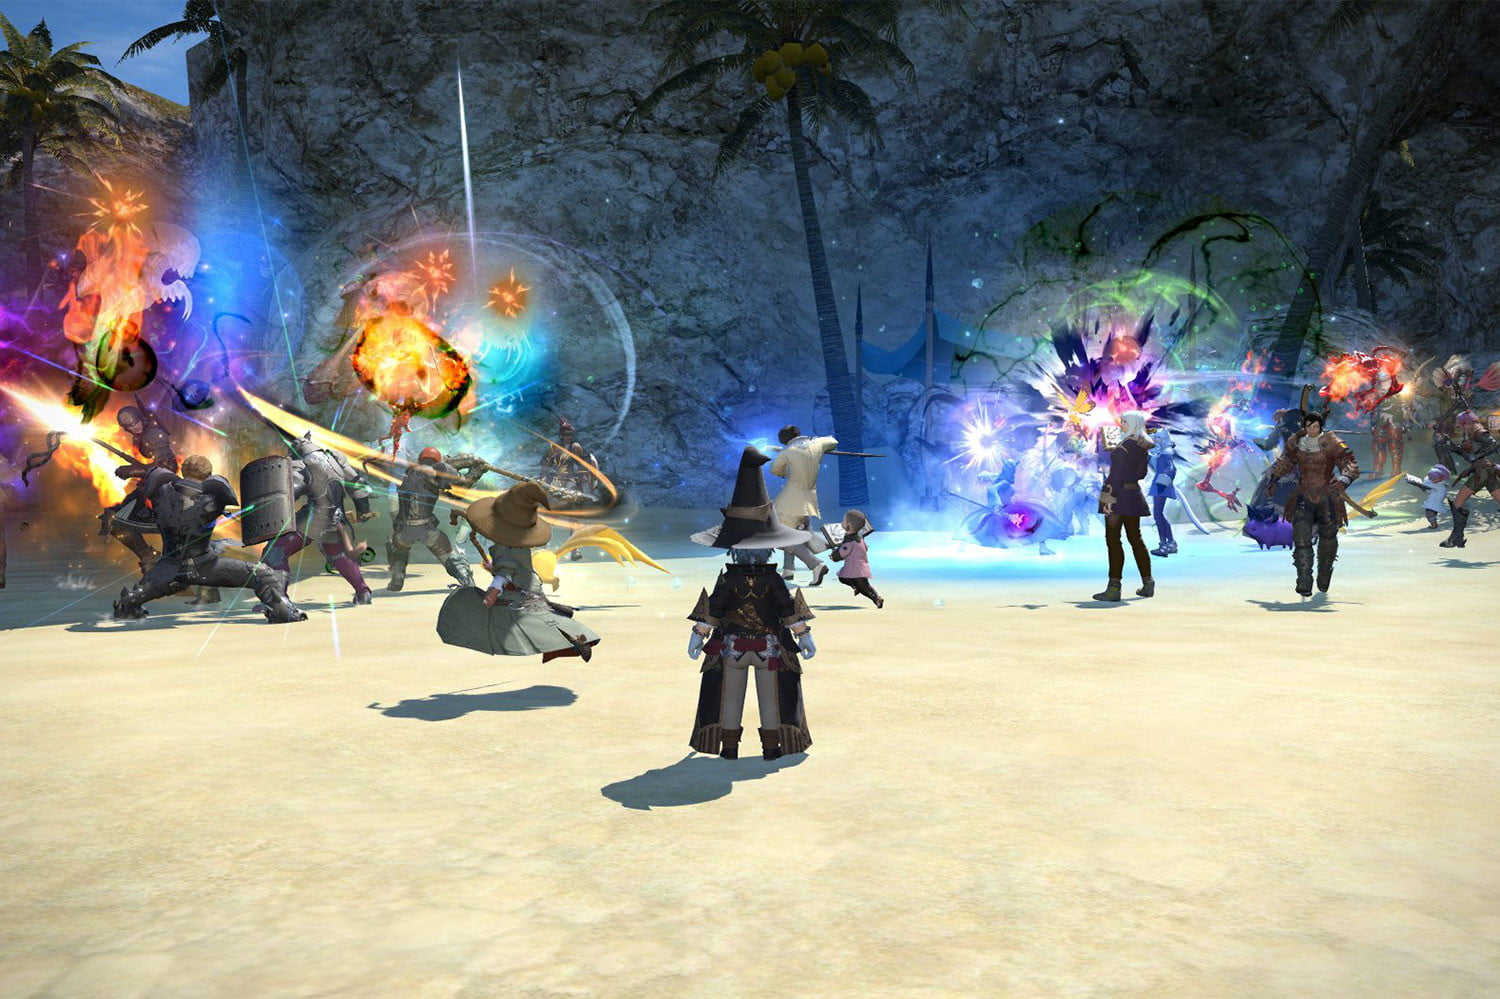 FFXIV: Beginner's Guide - From Kefka to Card Games | Digital